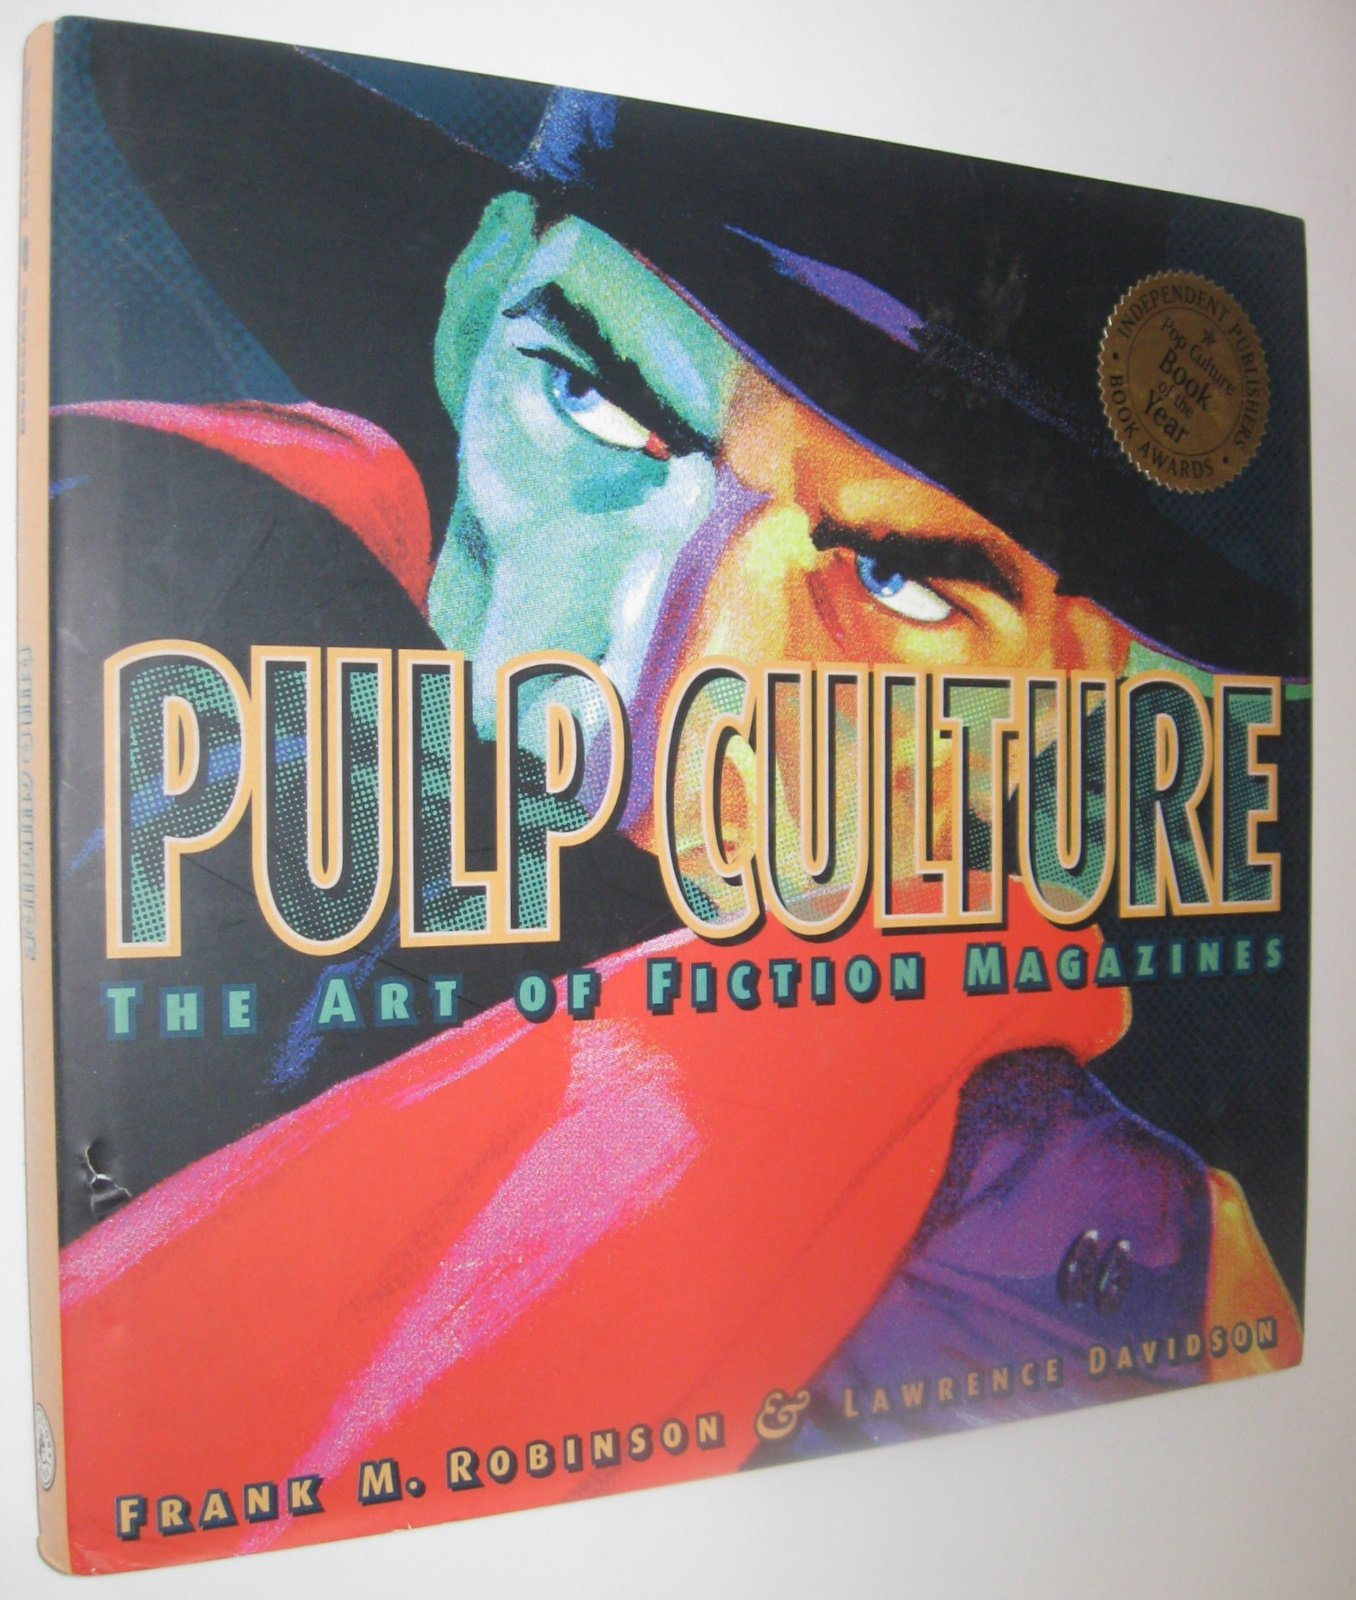 pulp culture the art of fiction magazines